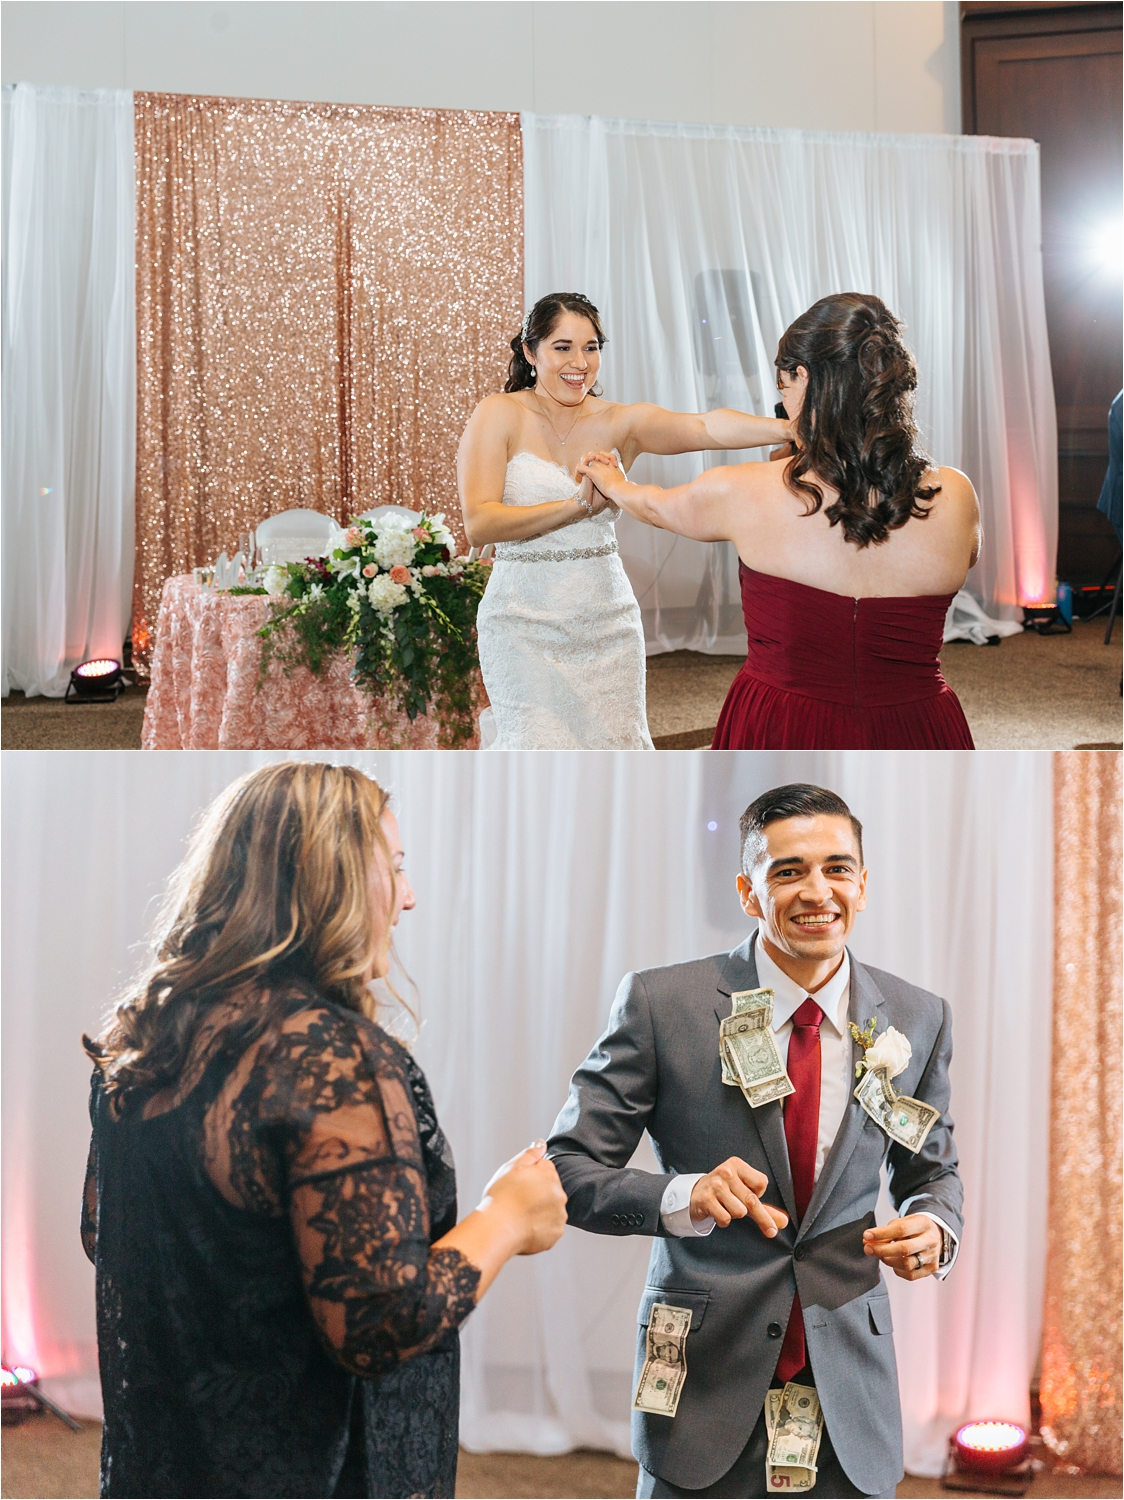 Reception Photos - https://brittneyhannonphotography.com